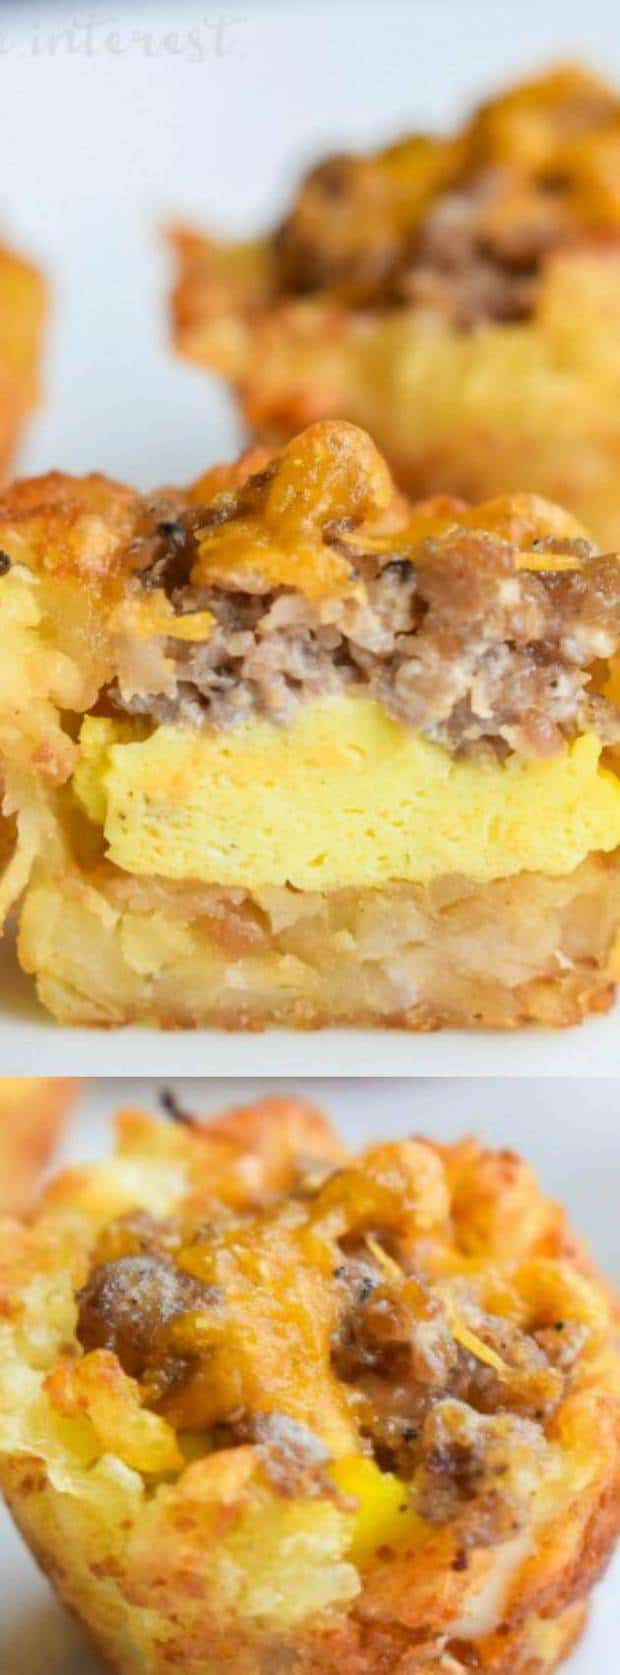 Sausage, Egg, and Cheese Breakfast Tots Longpin